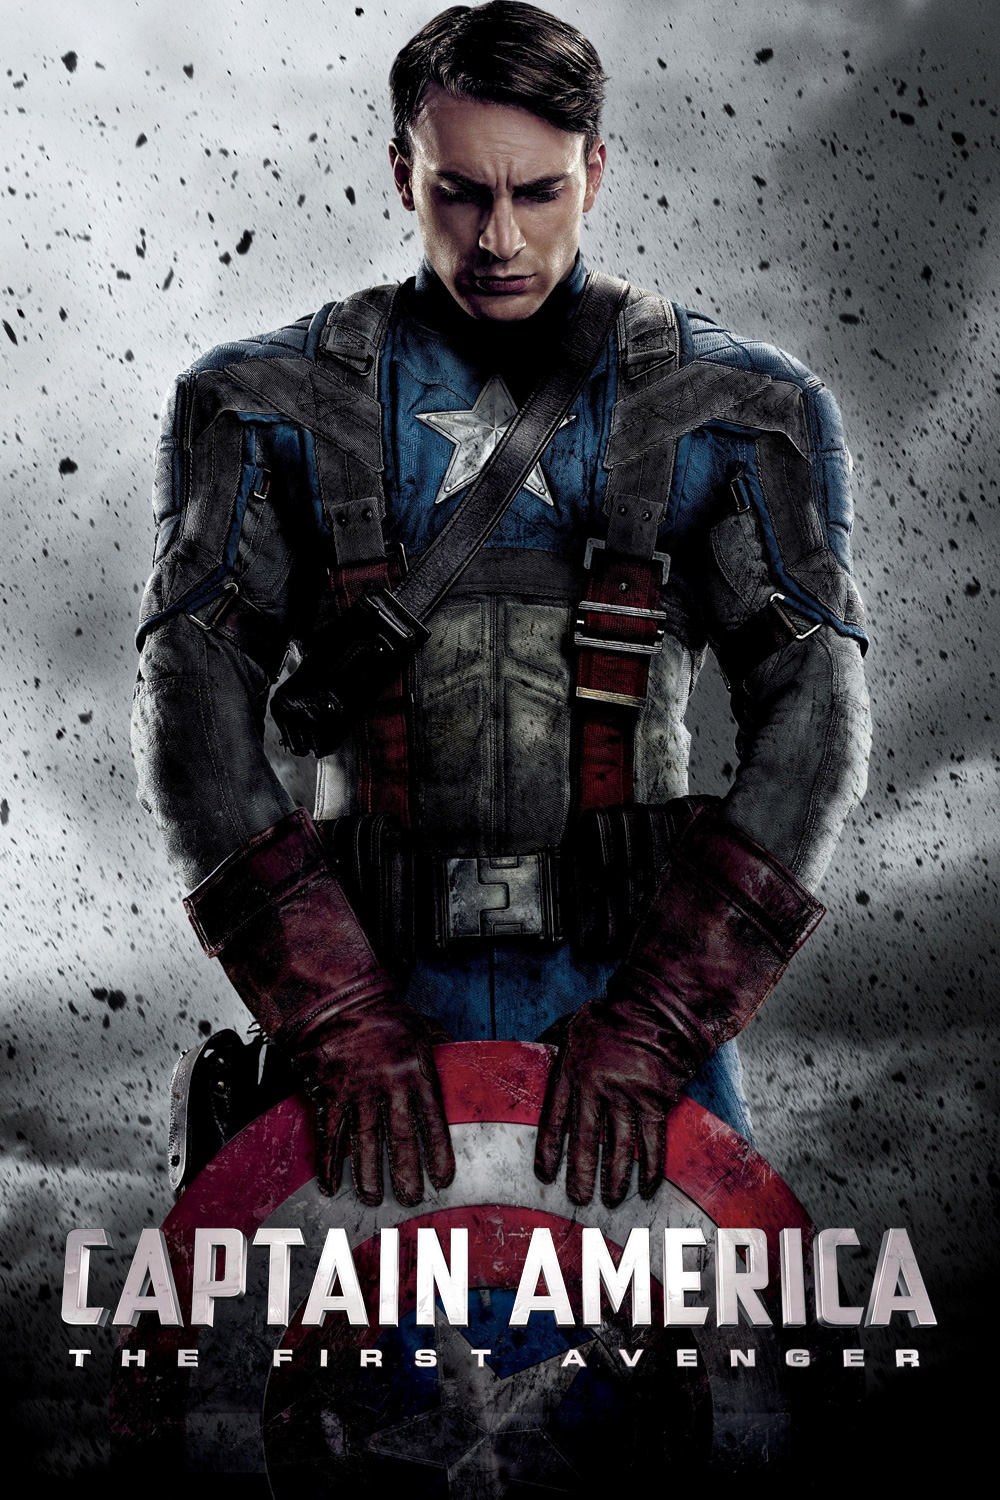 Who is Captain America